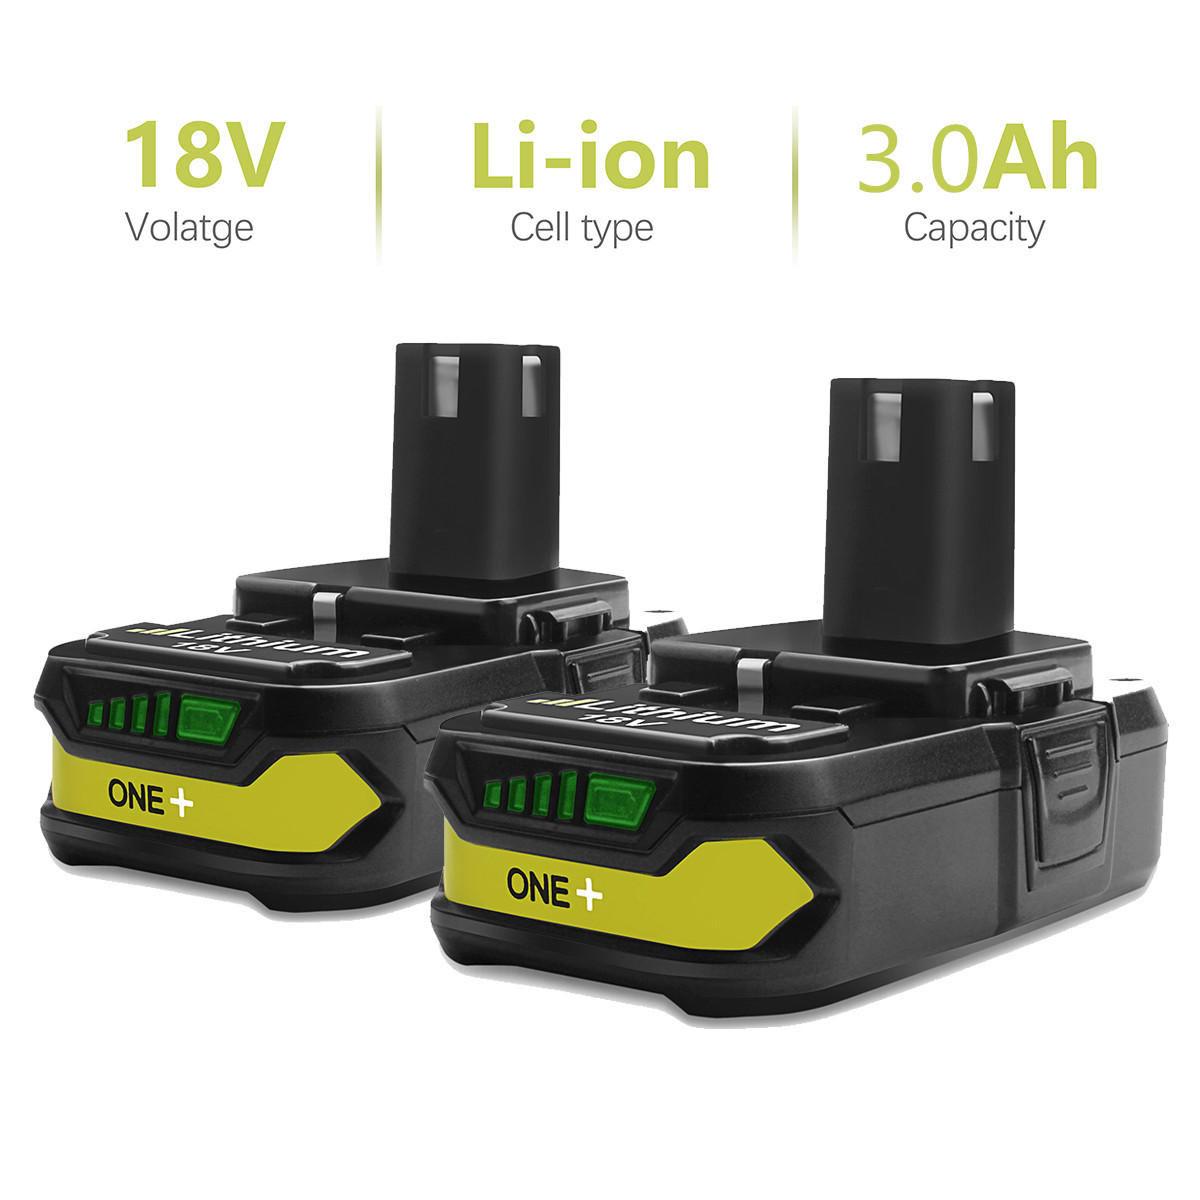 Bonacell 18V 3000mAh P107 Battery Replacement For Ryobi P104 P105 P102 P103 P107 Li-ion Battery Chargeable Power Tools Battery